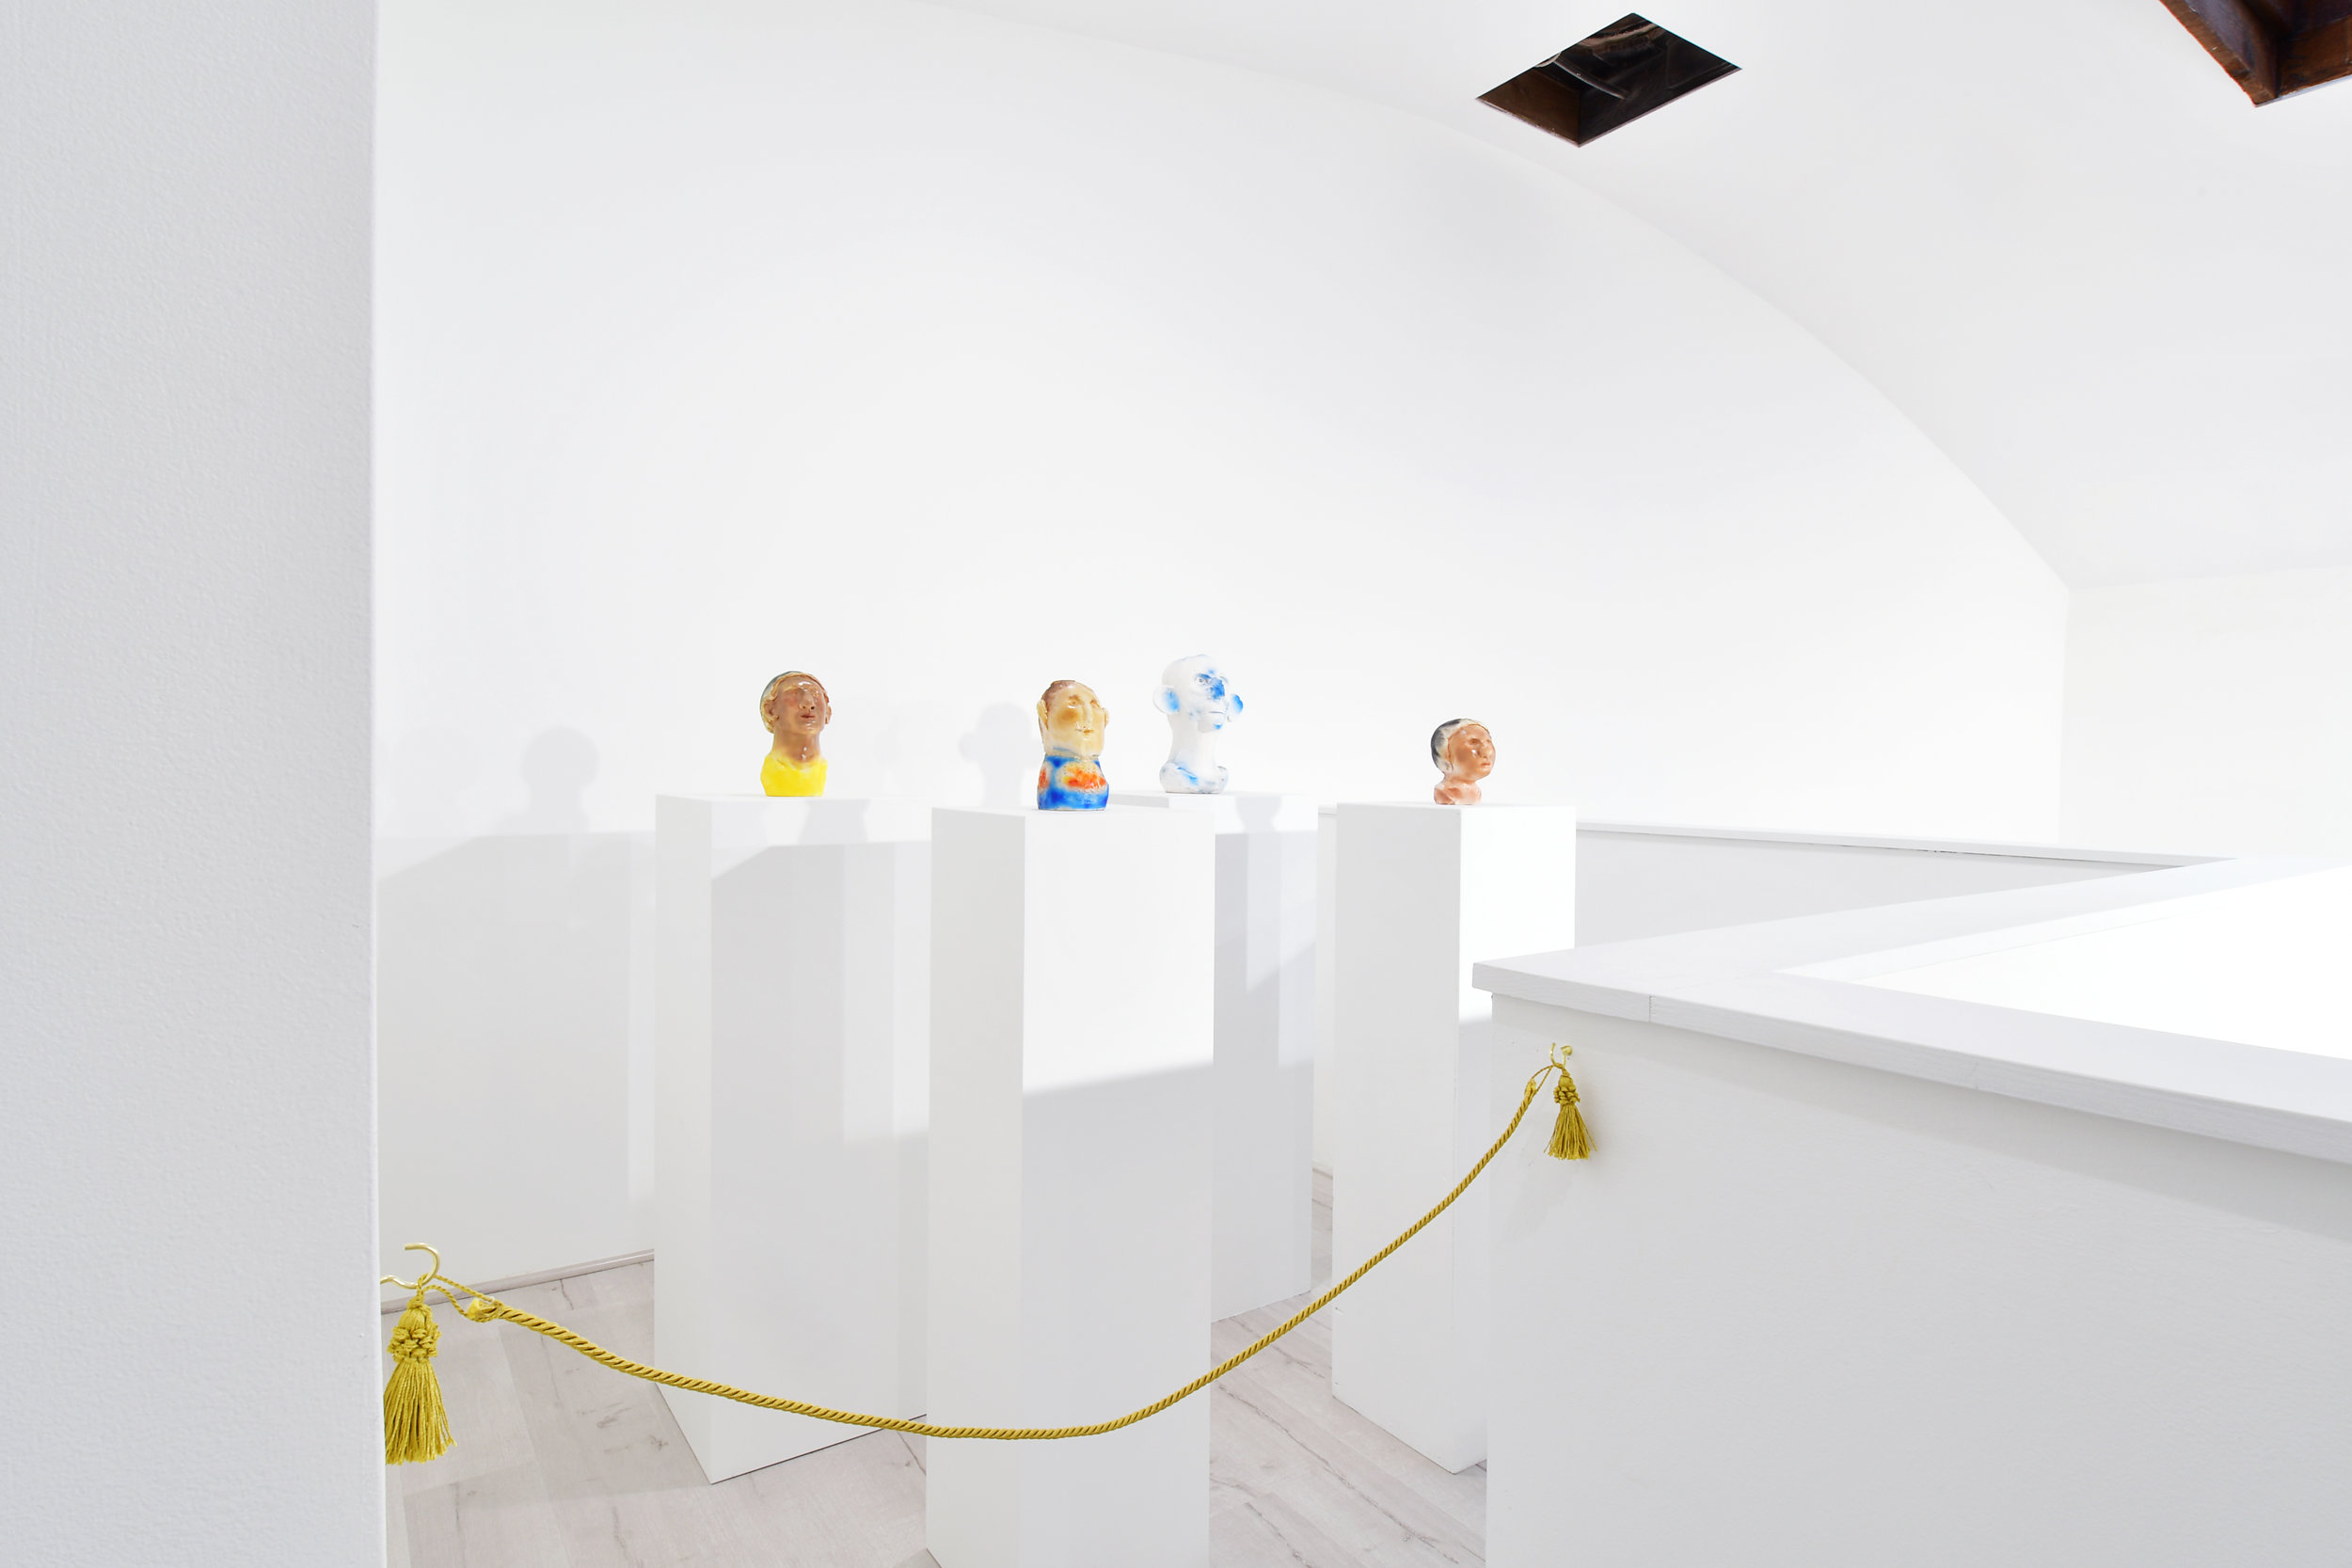 Installation view of Grant Falardeau's work in Apollo on Earth